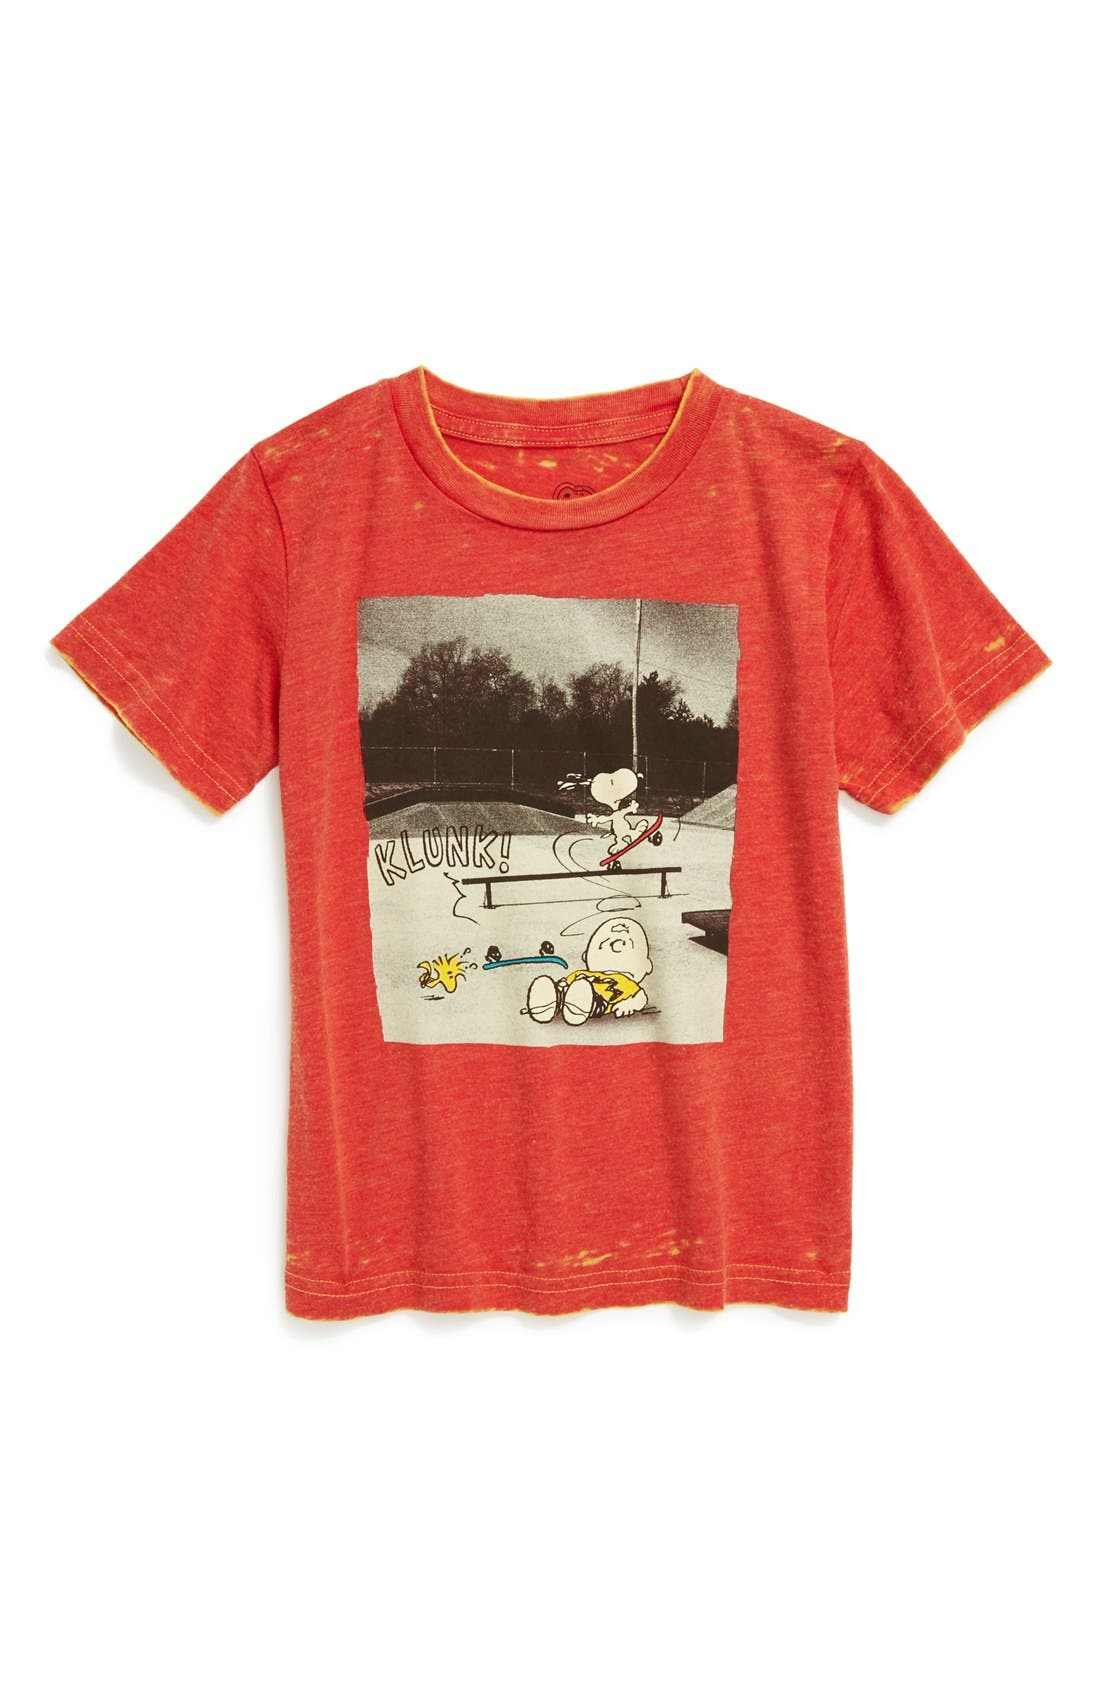 Alternate Image 1 Selected - Jem 'Charlie Brown™' Graphic T-Shirt (Toddler Boys)